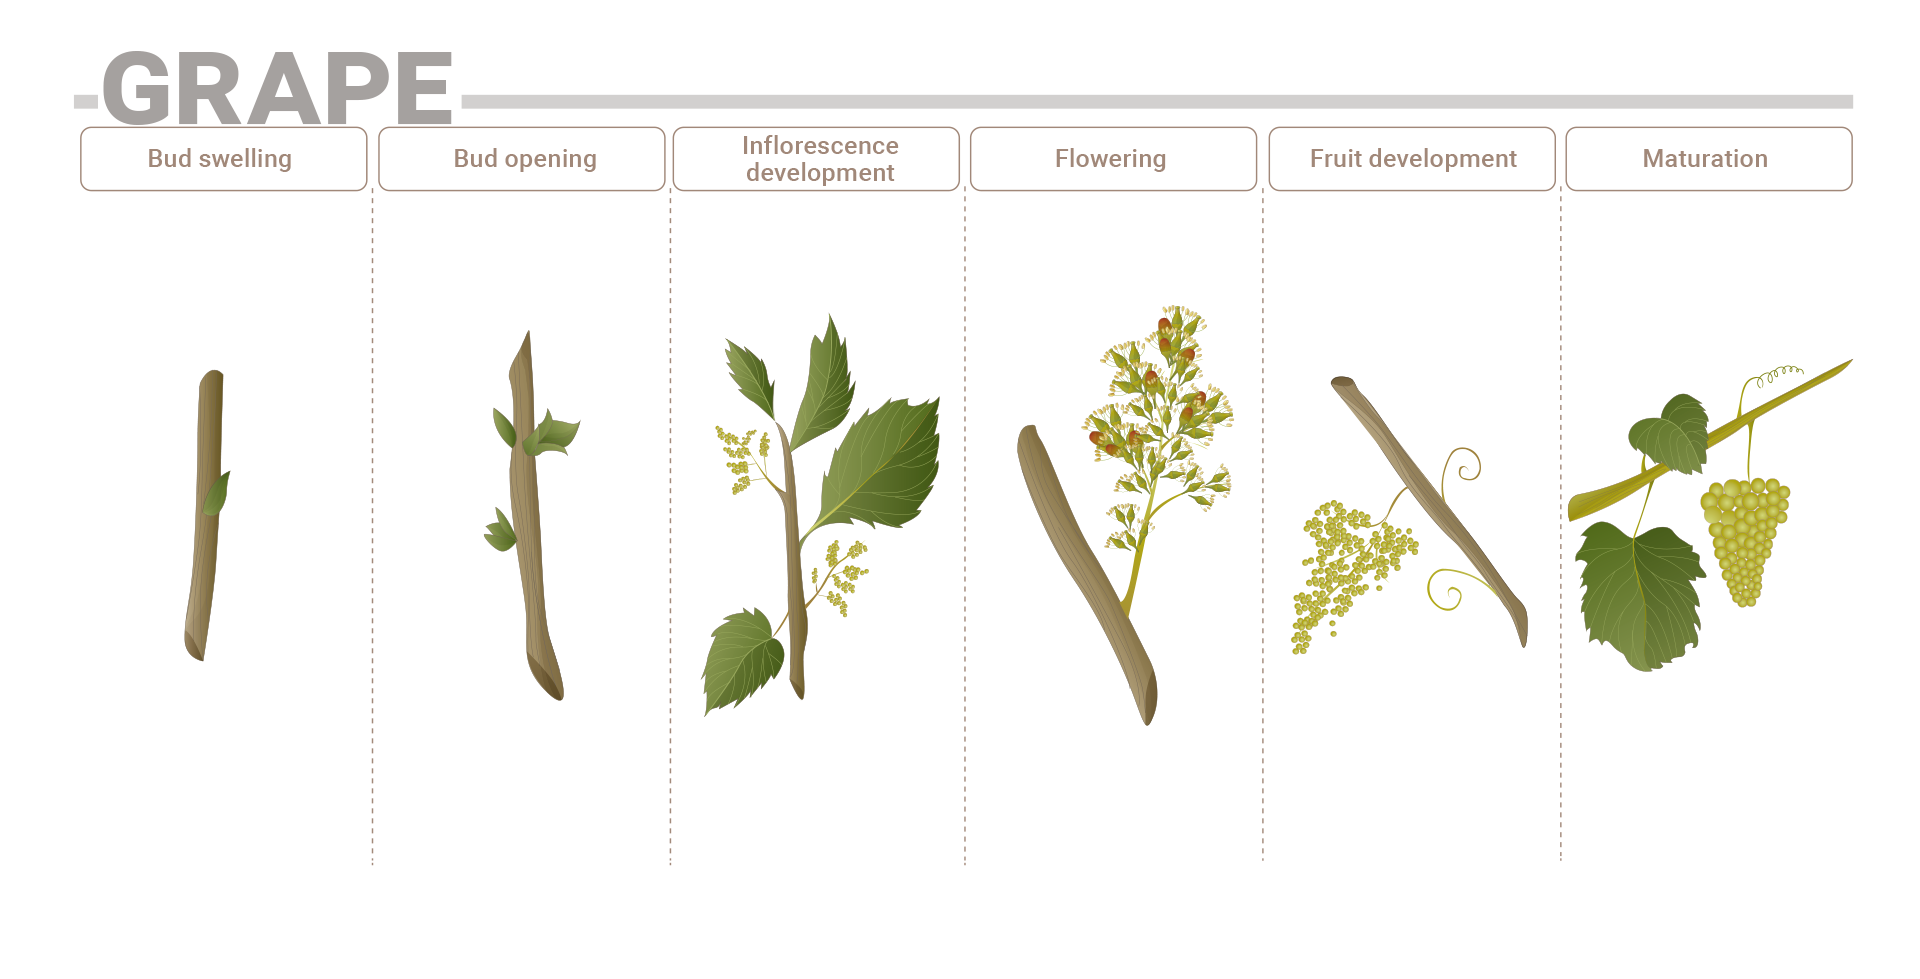 Phenological stage Grape